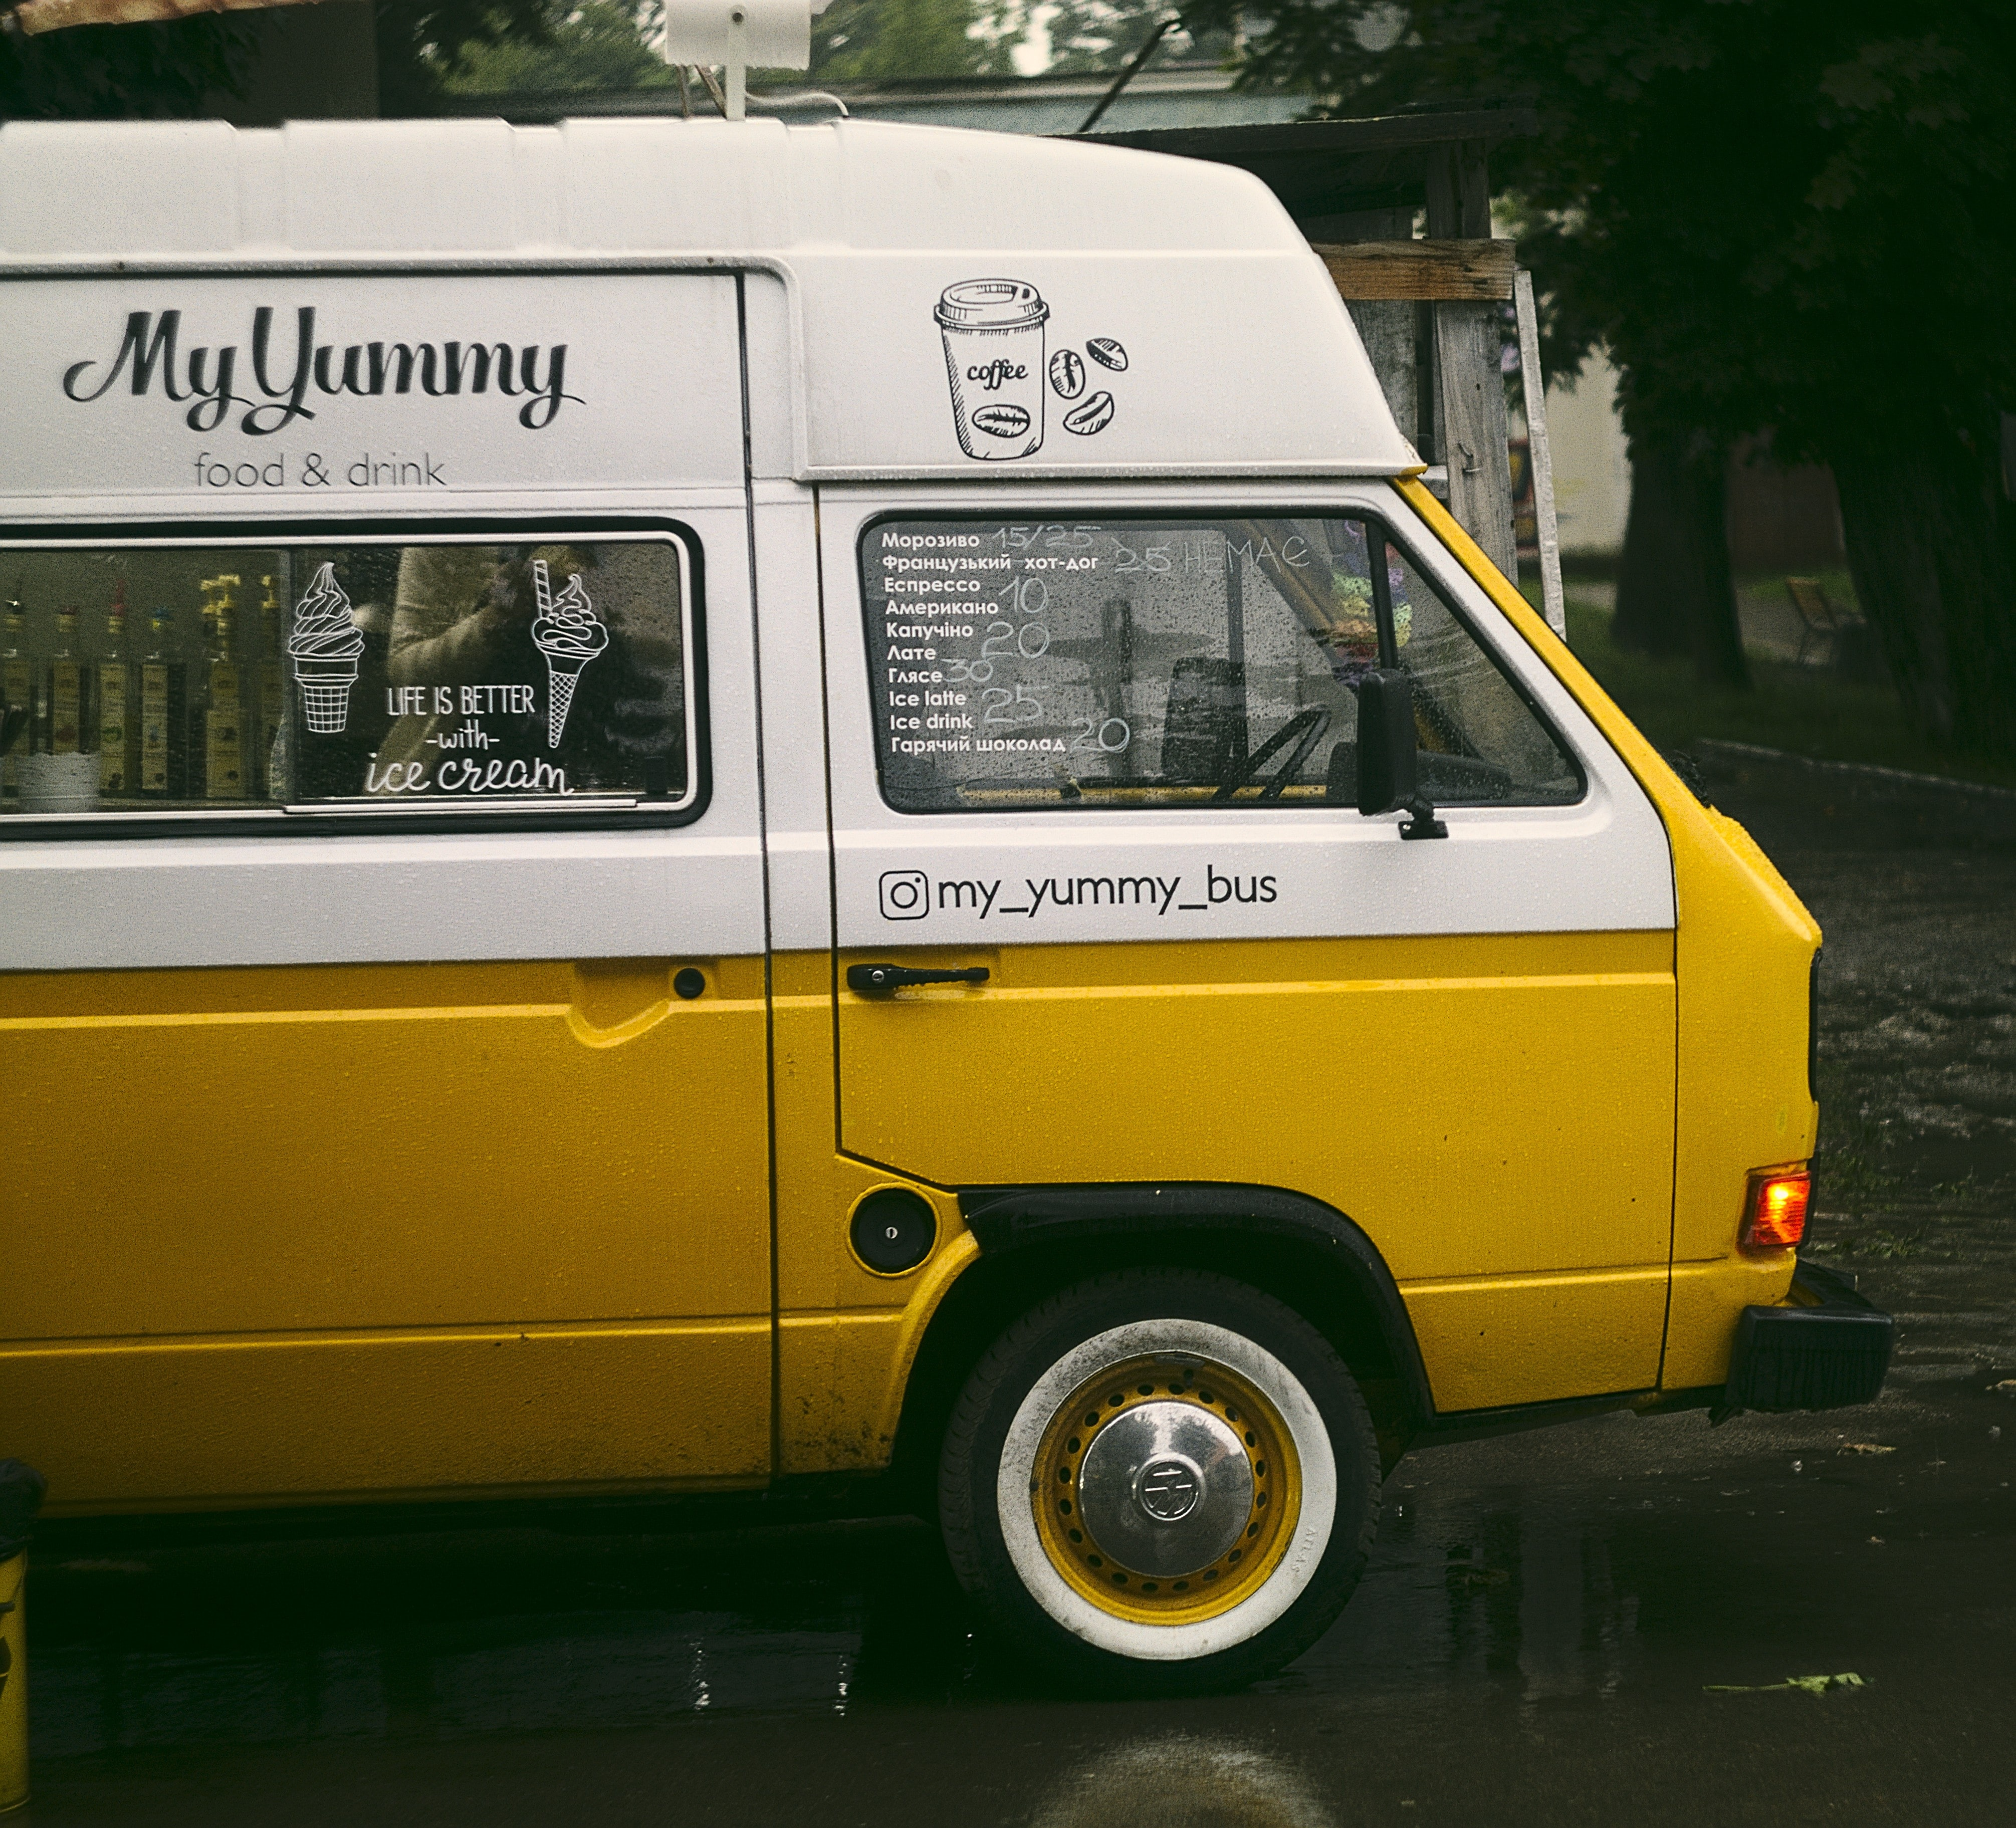 close-up photo of white and yellow food truck